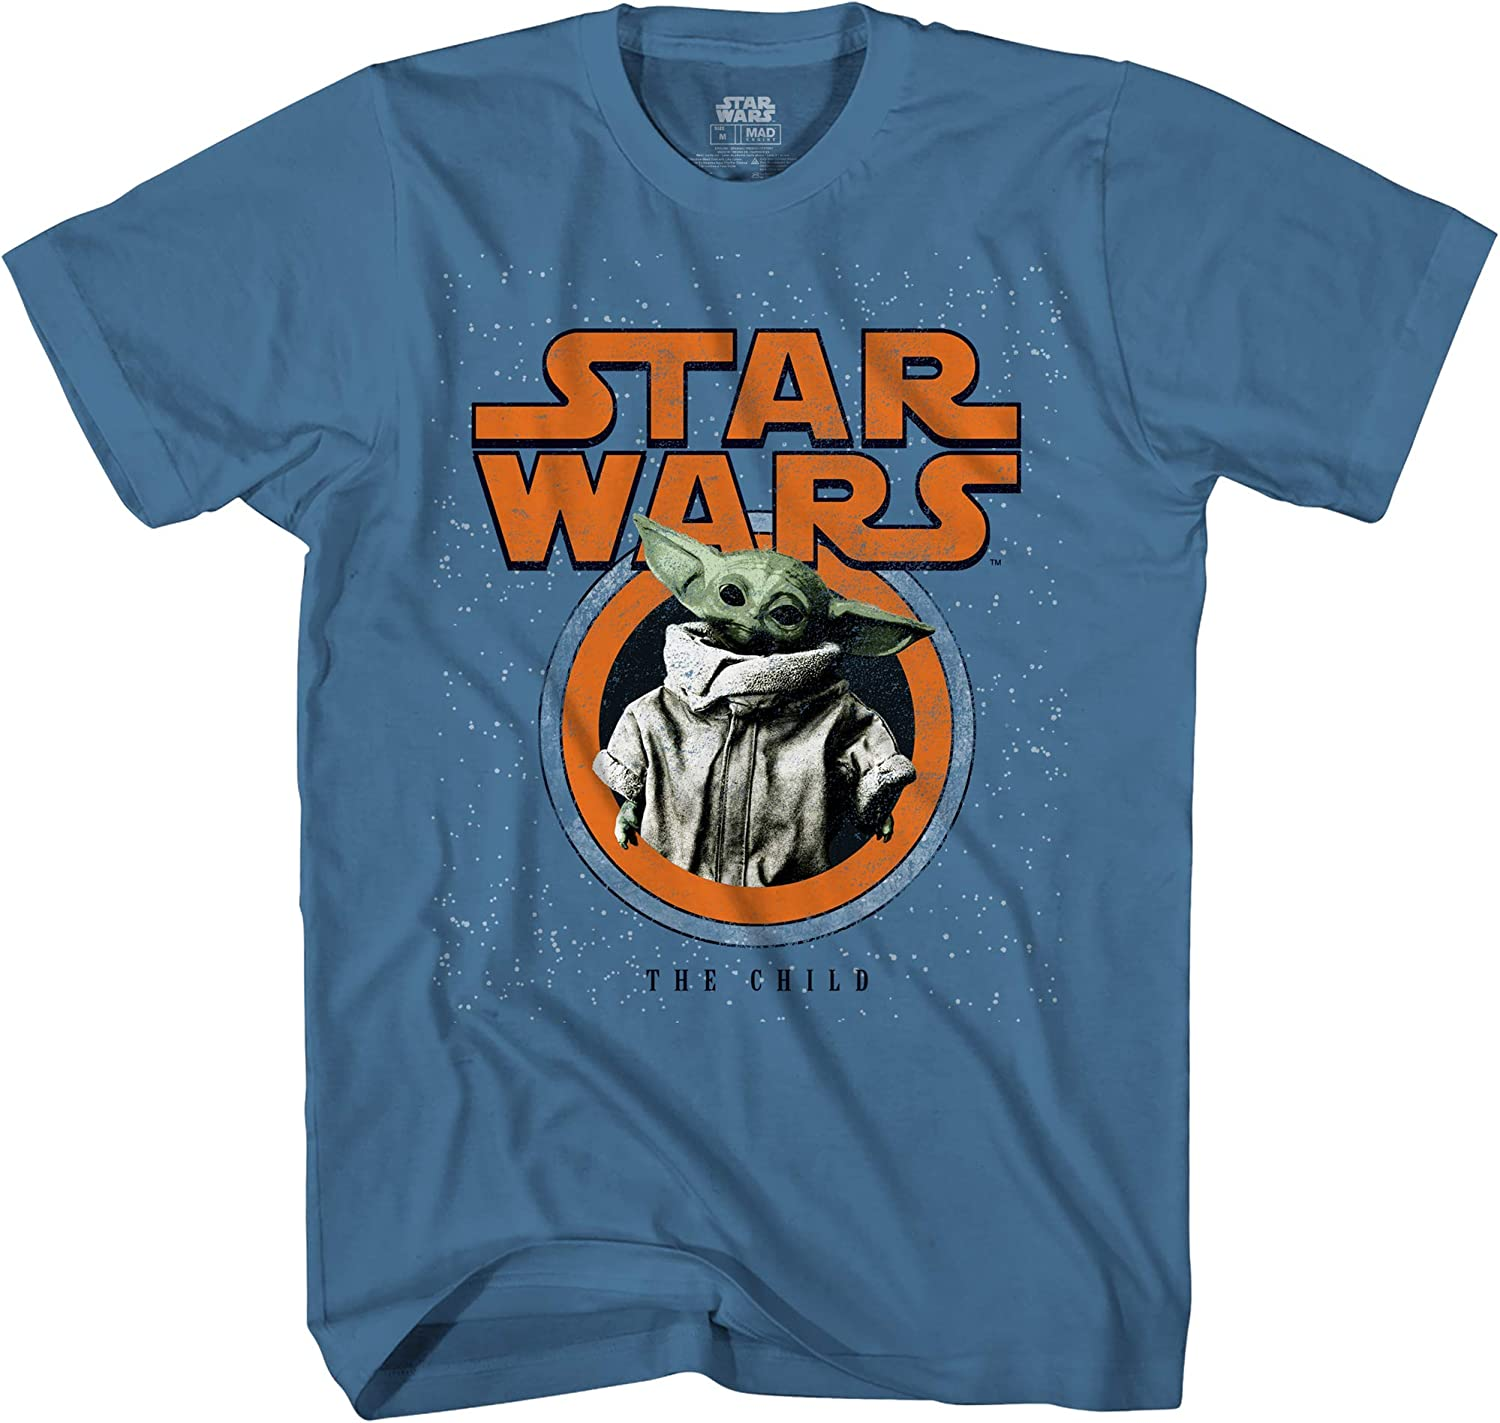 Star Wars The Mandalorian The Child Baby Yoda Distressed Logo Adult T-Shirt Licensed